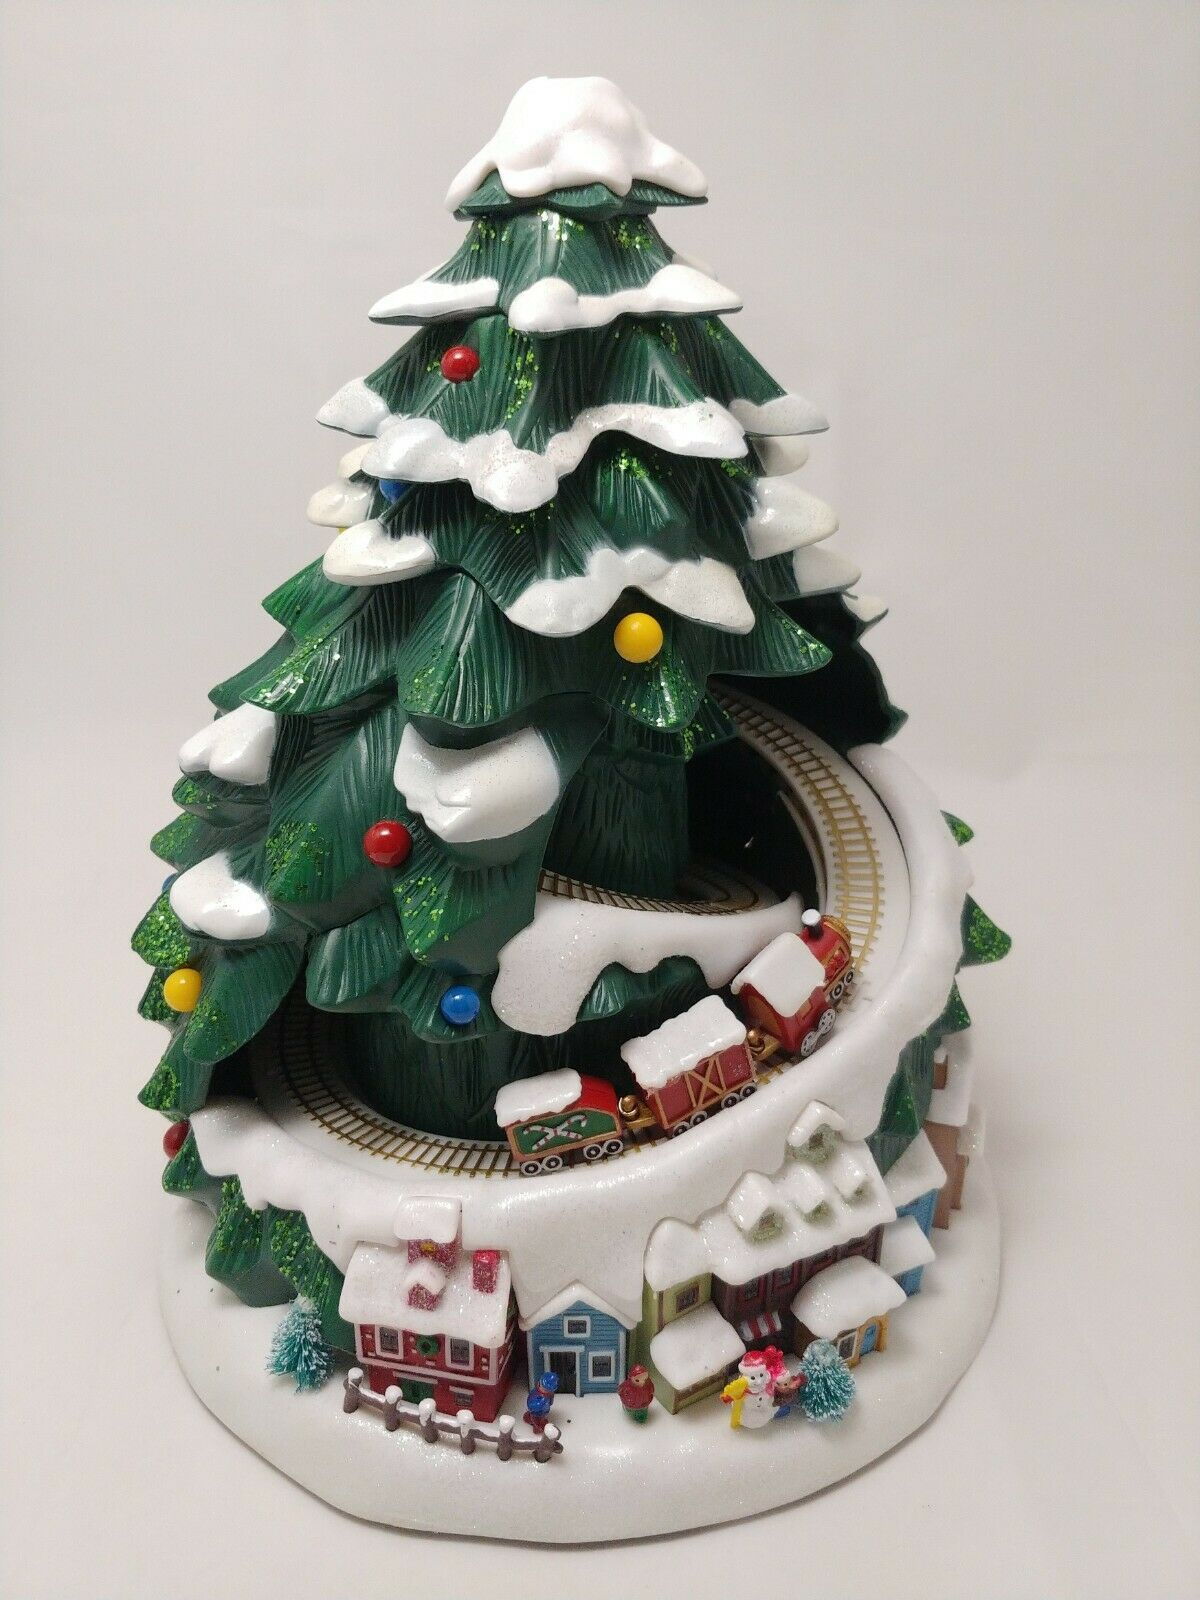 Avon 2007 Lighted Musical Holiday Christmas Tree With Train 8 Songs For Sale Online Ebay